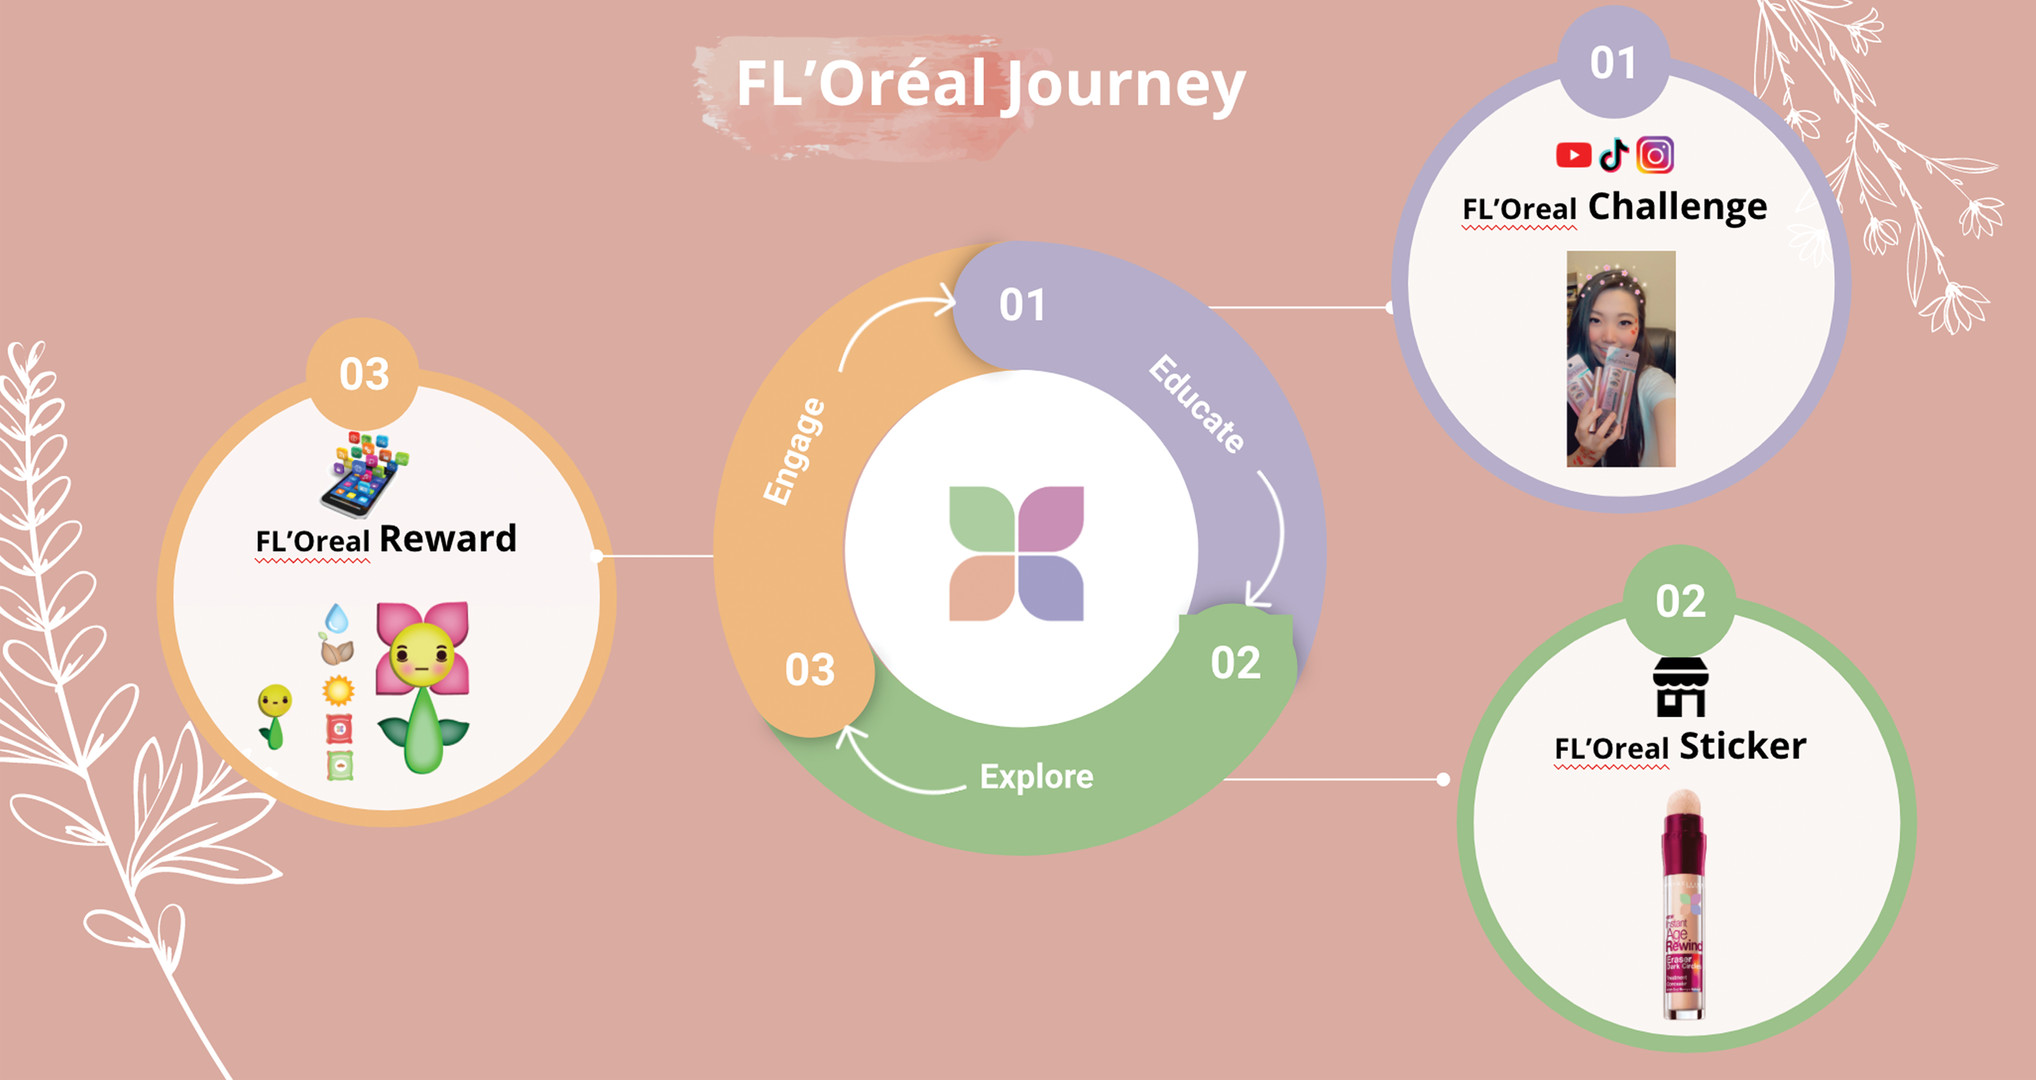 The FL'Oreal Journey Map